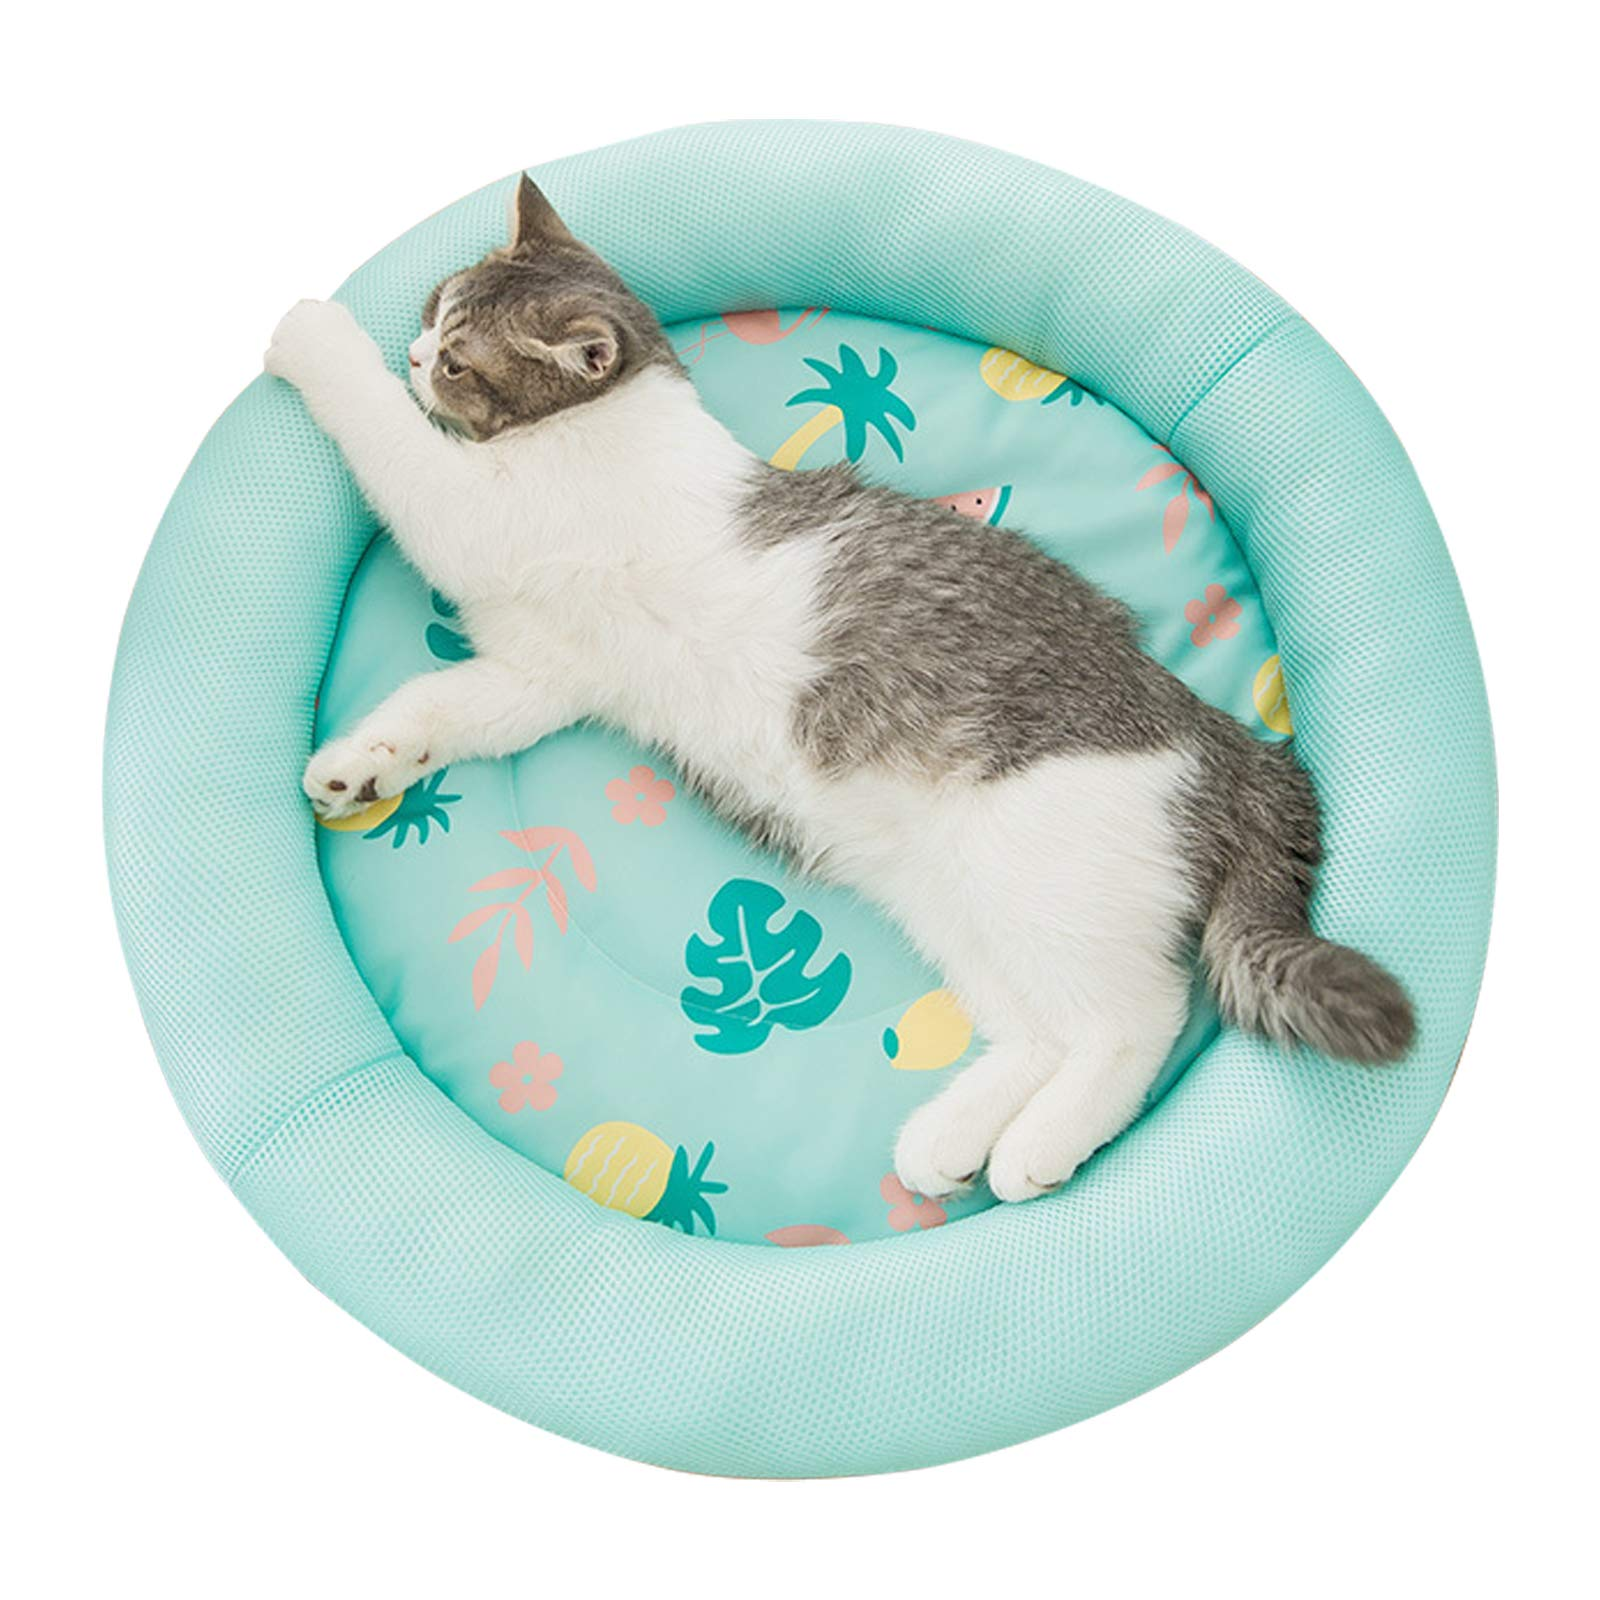 """ROZKITCH Cooling Dog Bed, Soft Summer Ice Pet Pad Cushion for Small Dog Sleeping, Round Breathable Mat with Waterproof Cover and Bottom, Non-Slip Back Washable Green 15.7""""/19.6""""/23.6"""" Dia."""